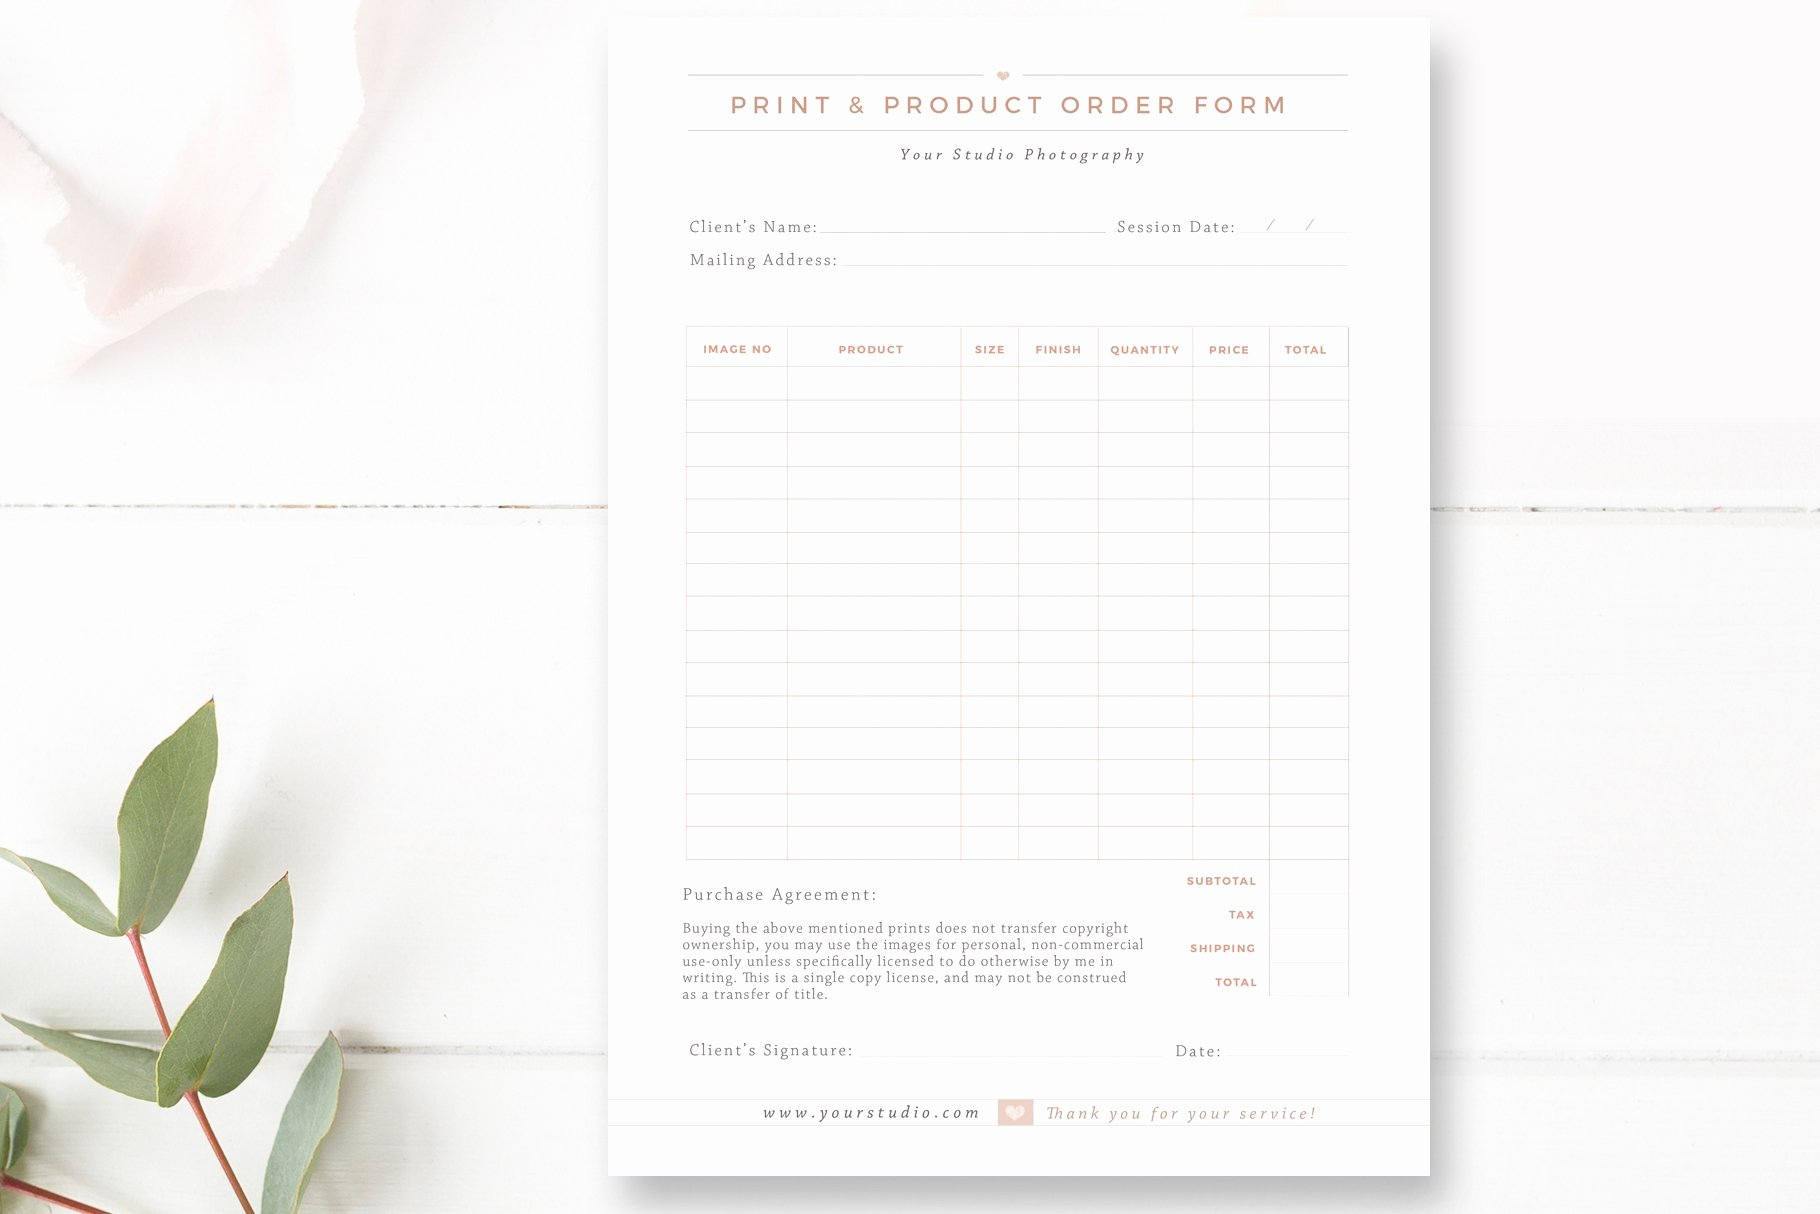 Product order form Template Free Lovely Print & Product order form Flyer Templates Creative Market